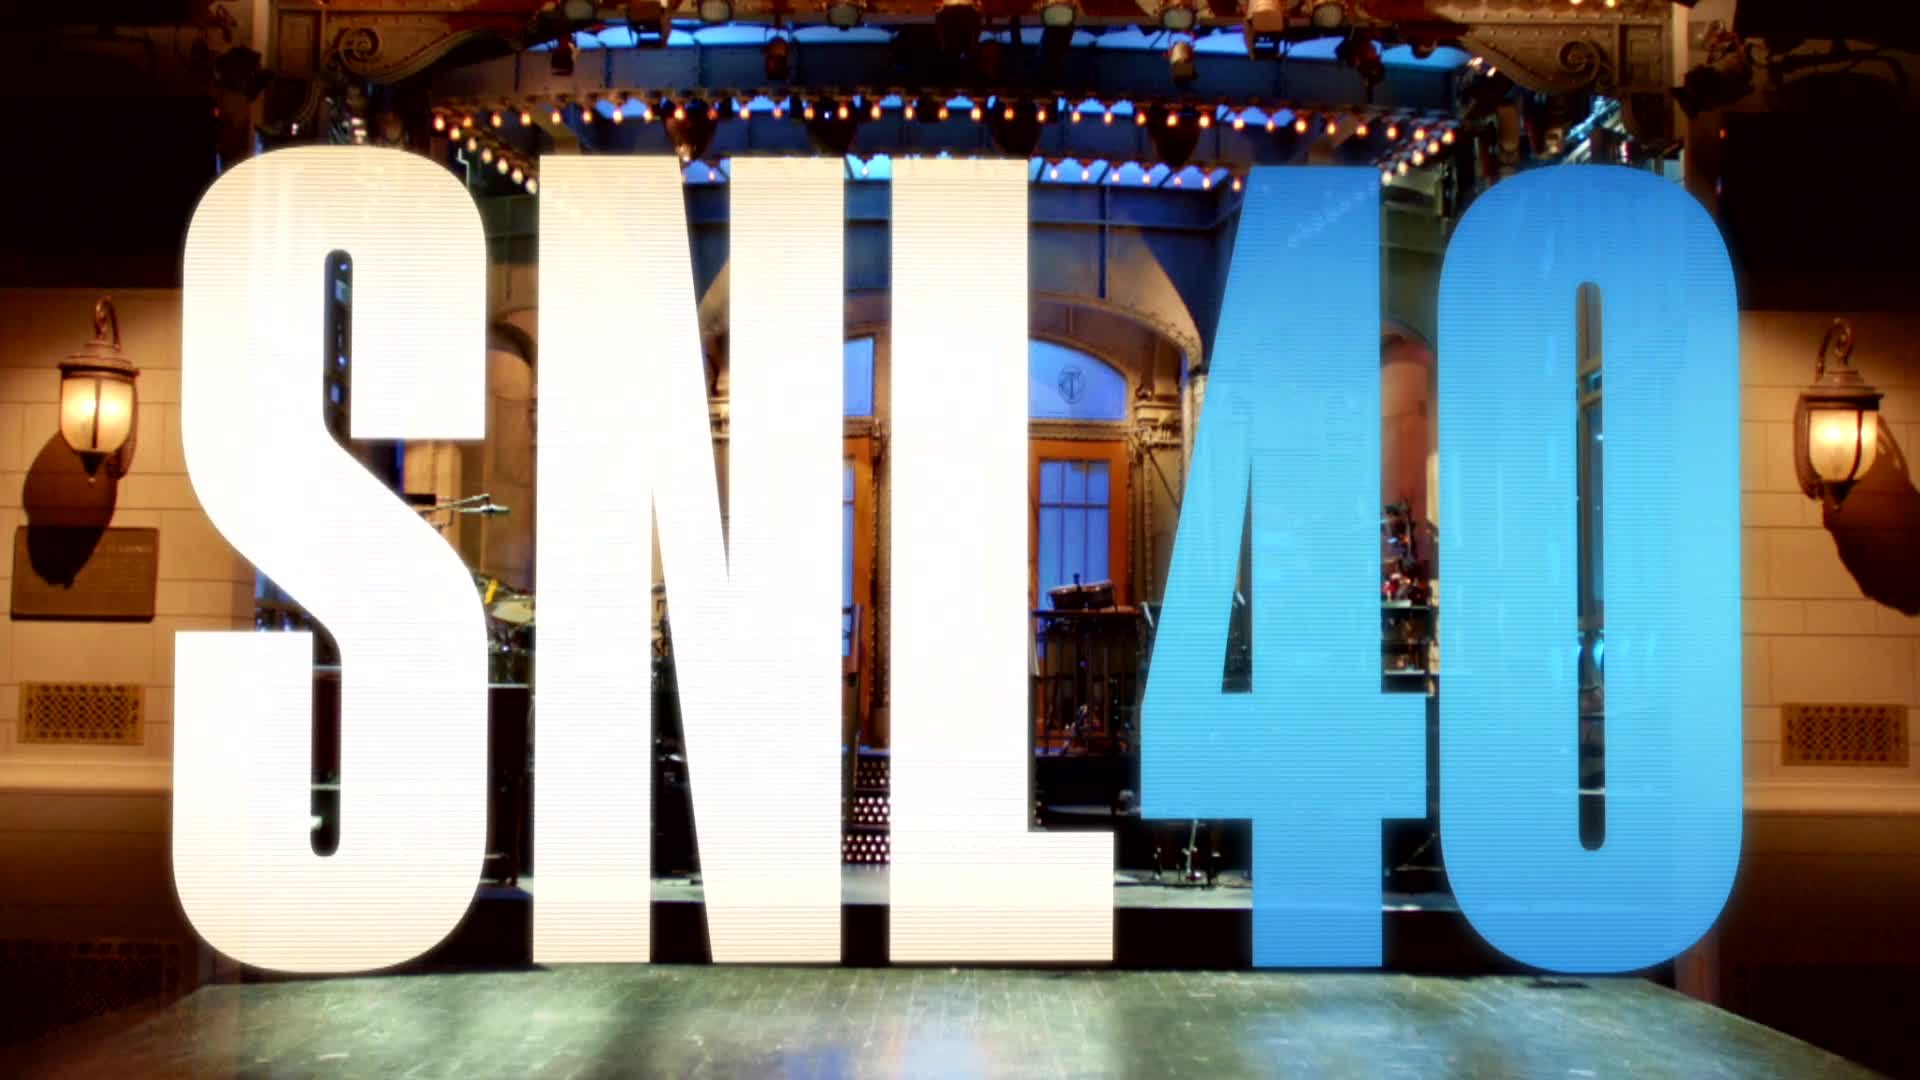 A Short Breakdown of SNL's 40th Anniversary Special